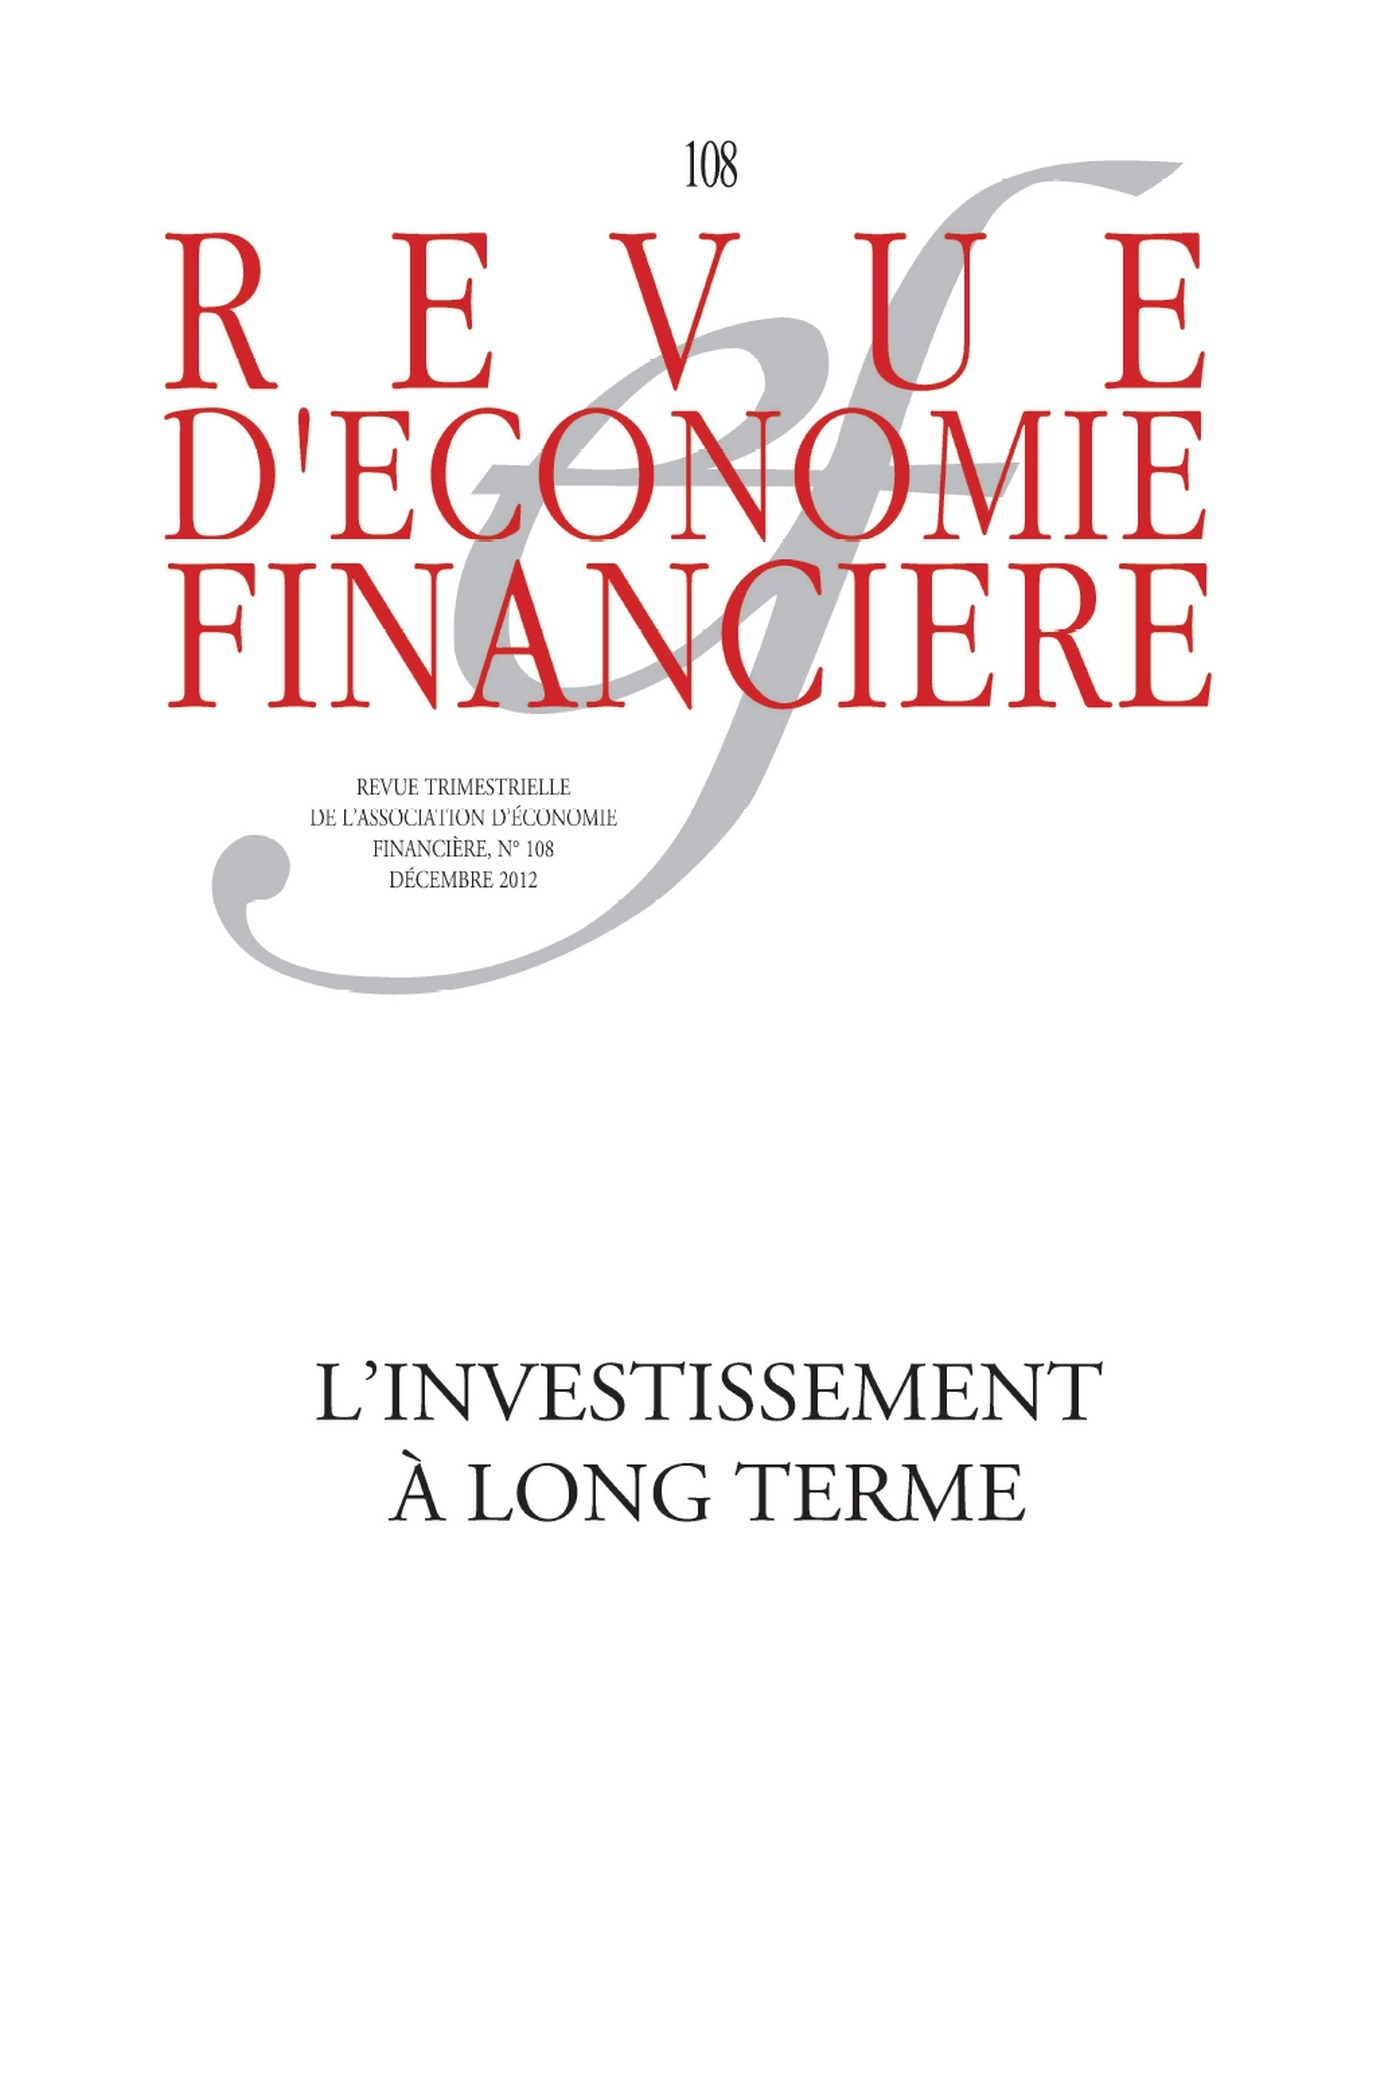 Arkwright Edwar L'Investissement A Long Terme. N 108 - Dcembre 2012